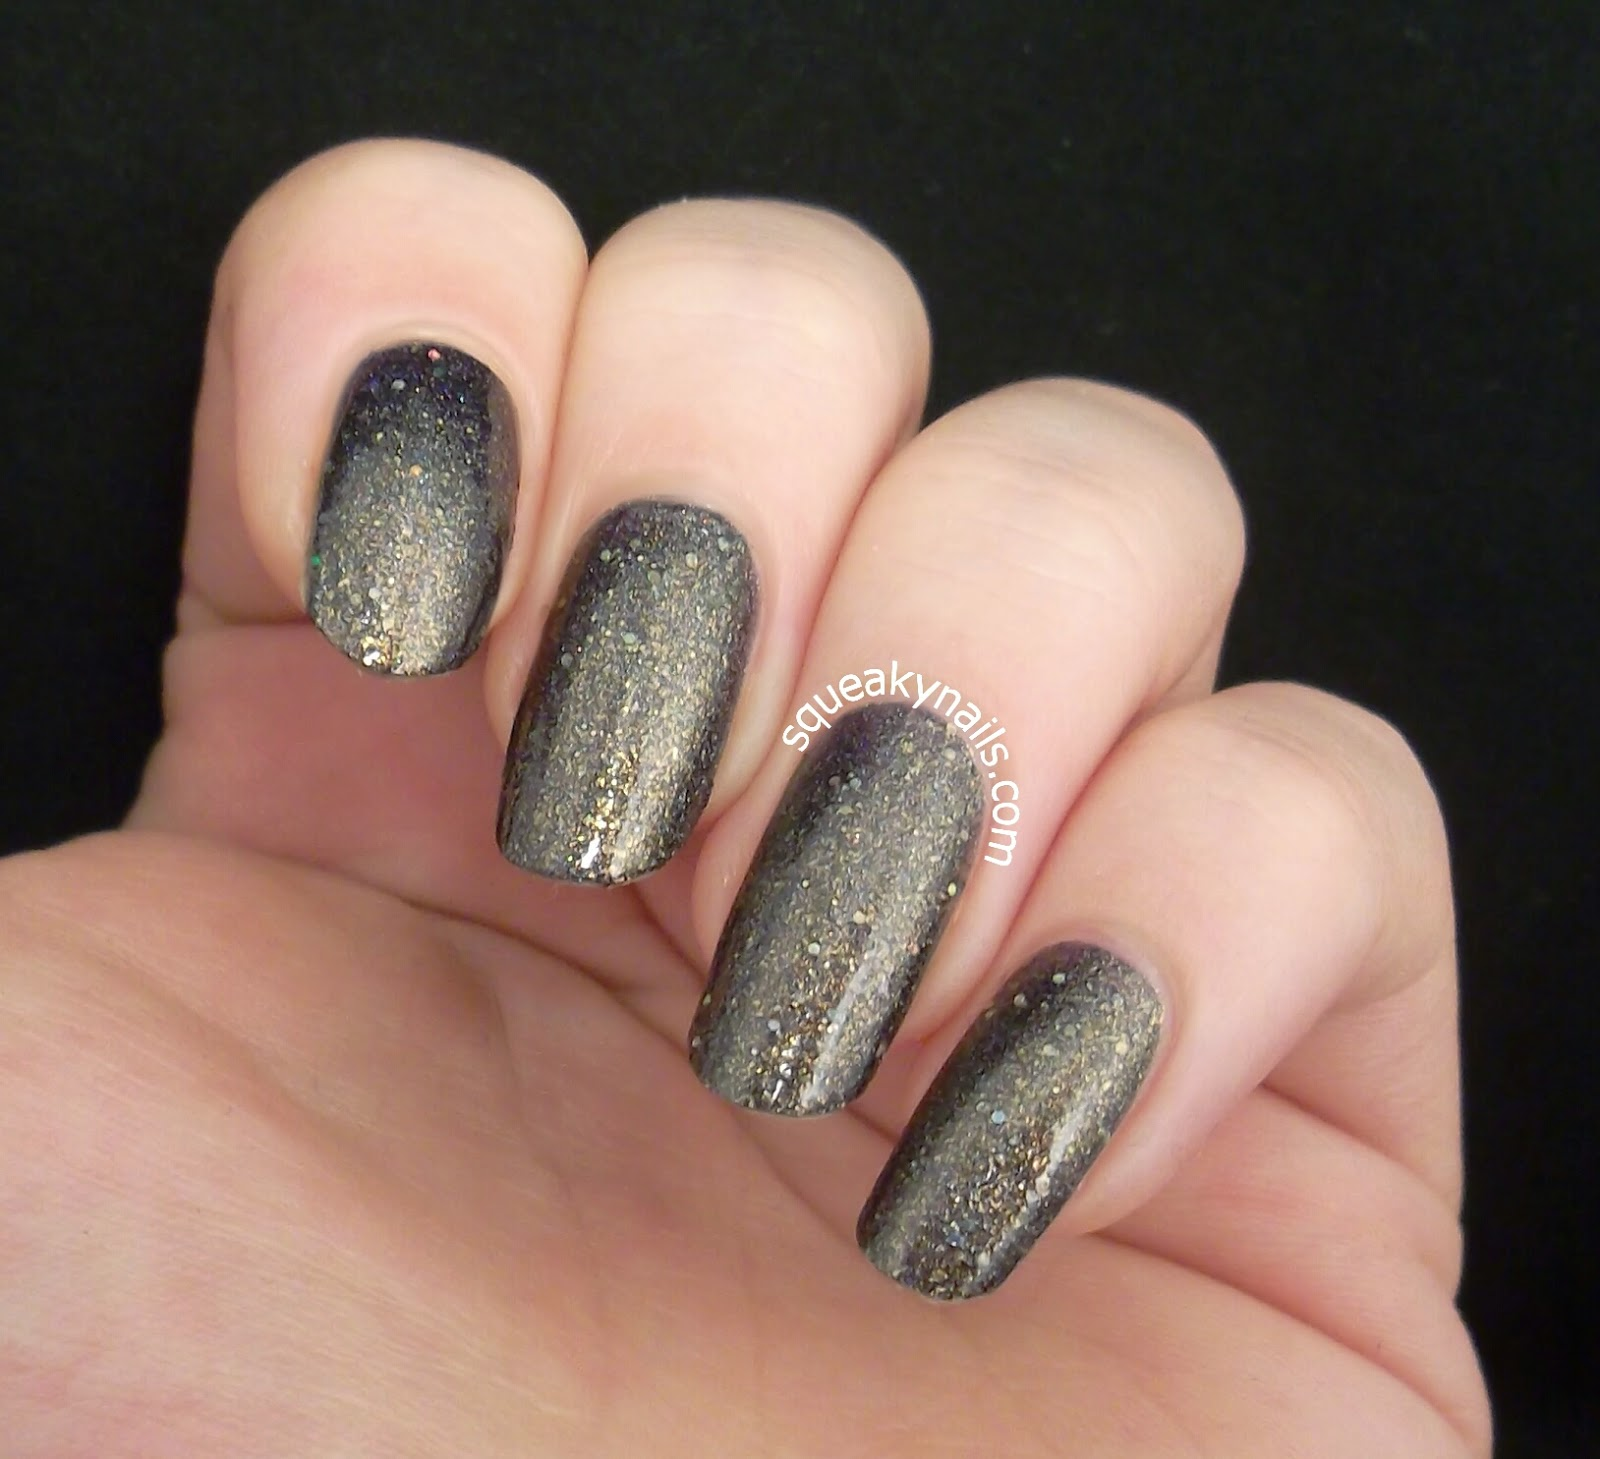 Renaissance Cosmetics Sex, Death and Rock 'n' Roll | Squeaky Nails